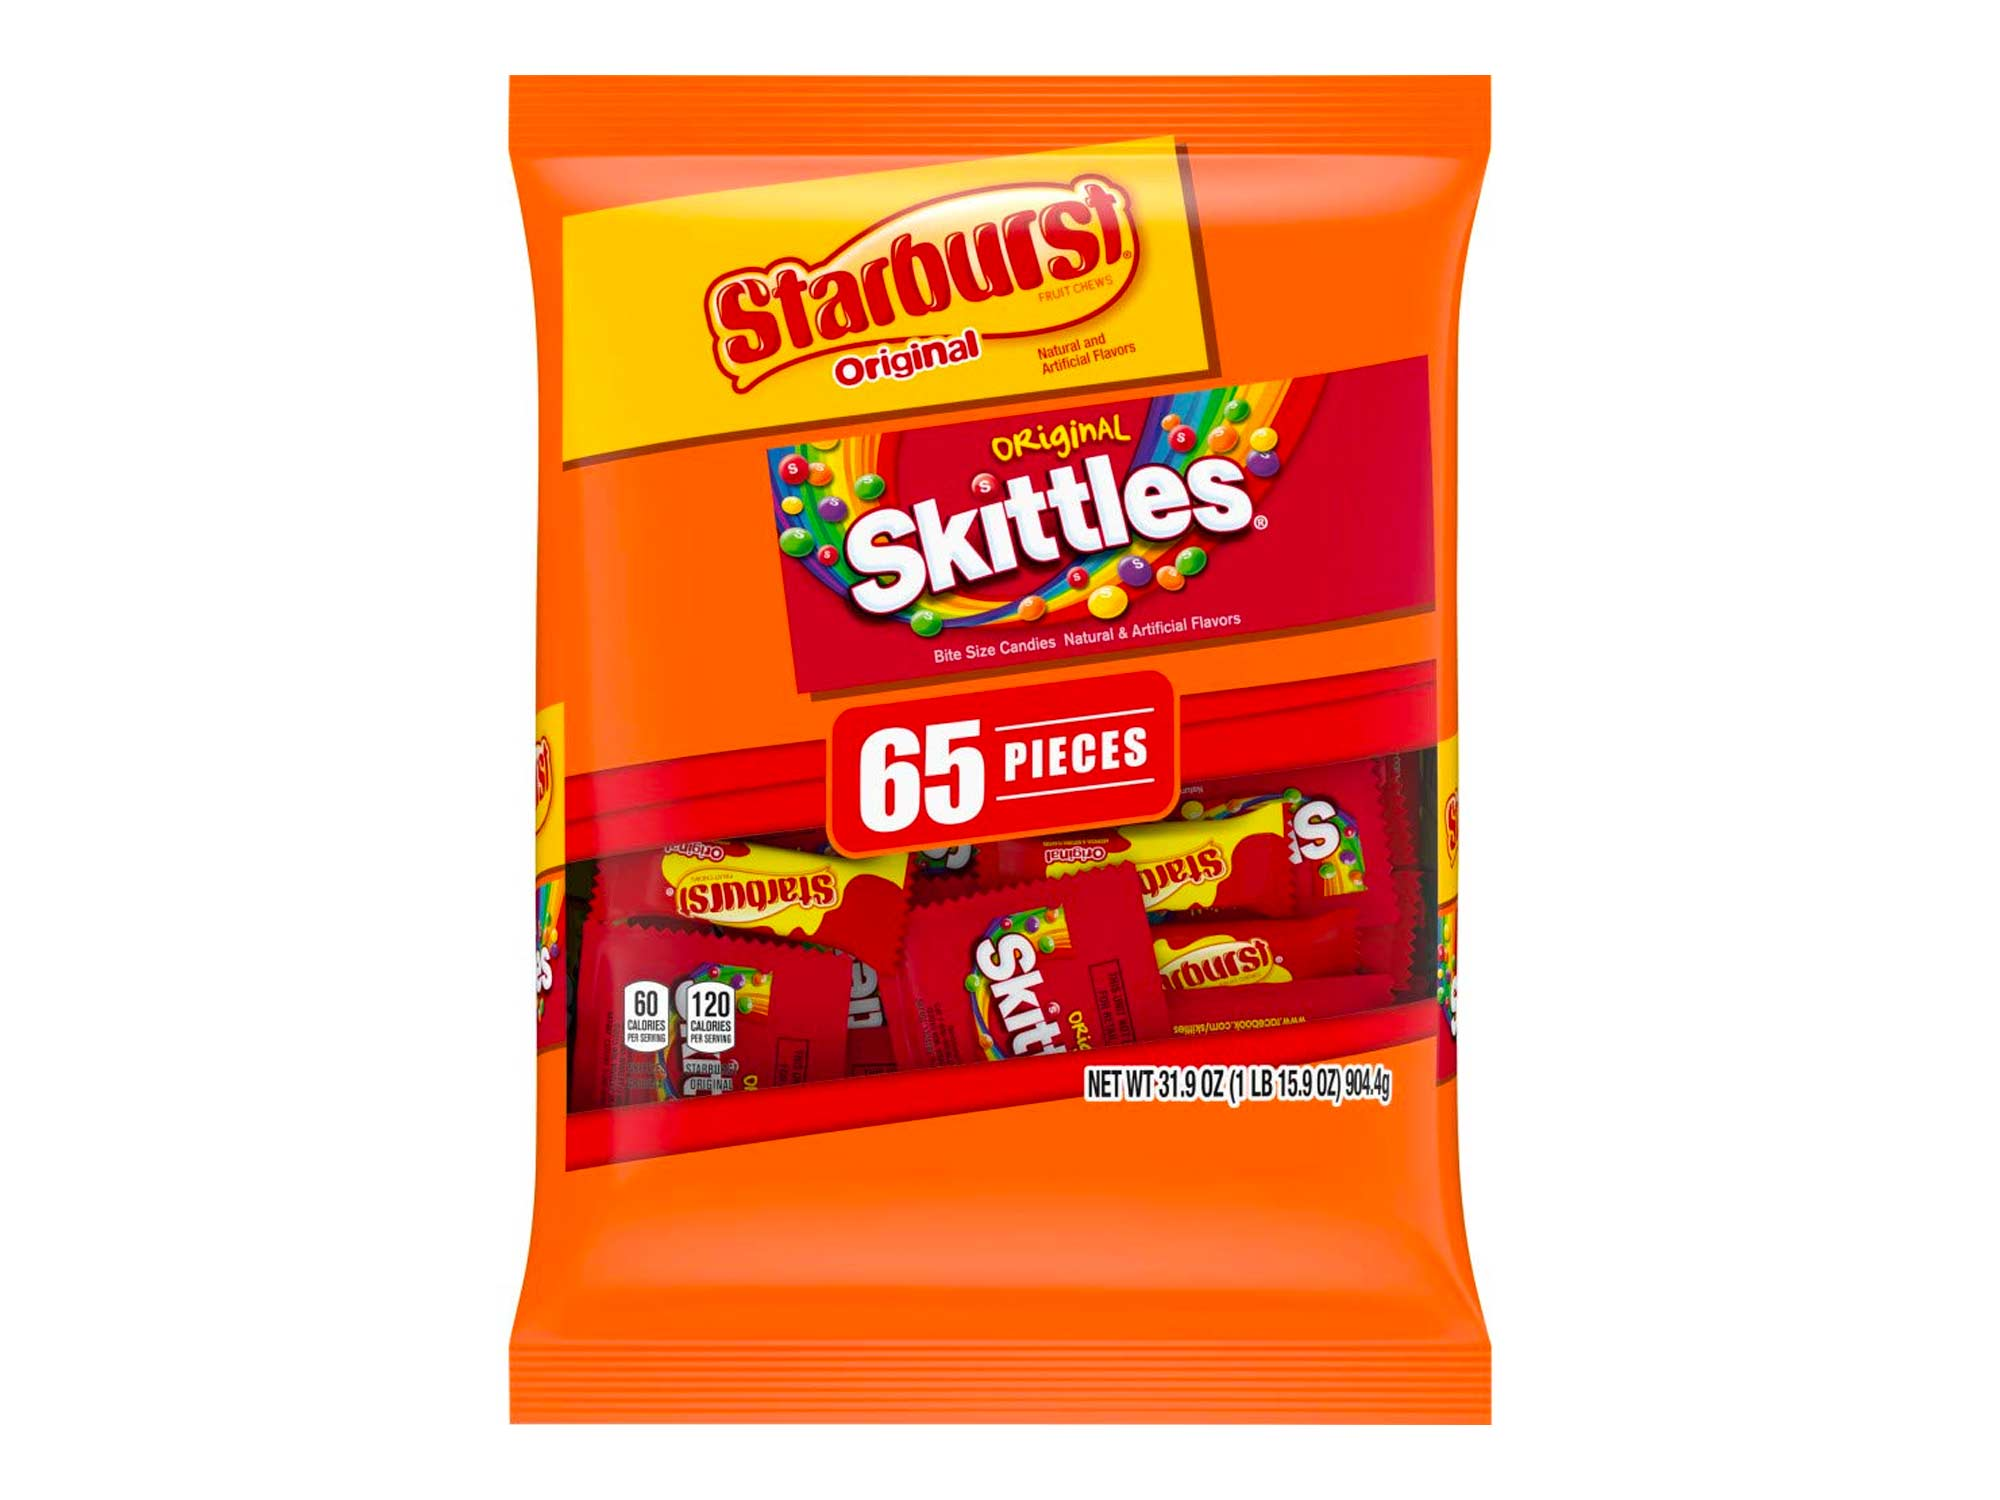 SKITTLES & STARBURST Candy Fun Size Variety Mix 31.9-Ounce Bag, 65 Pieces